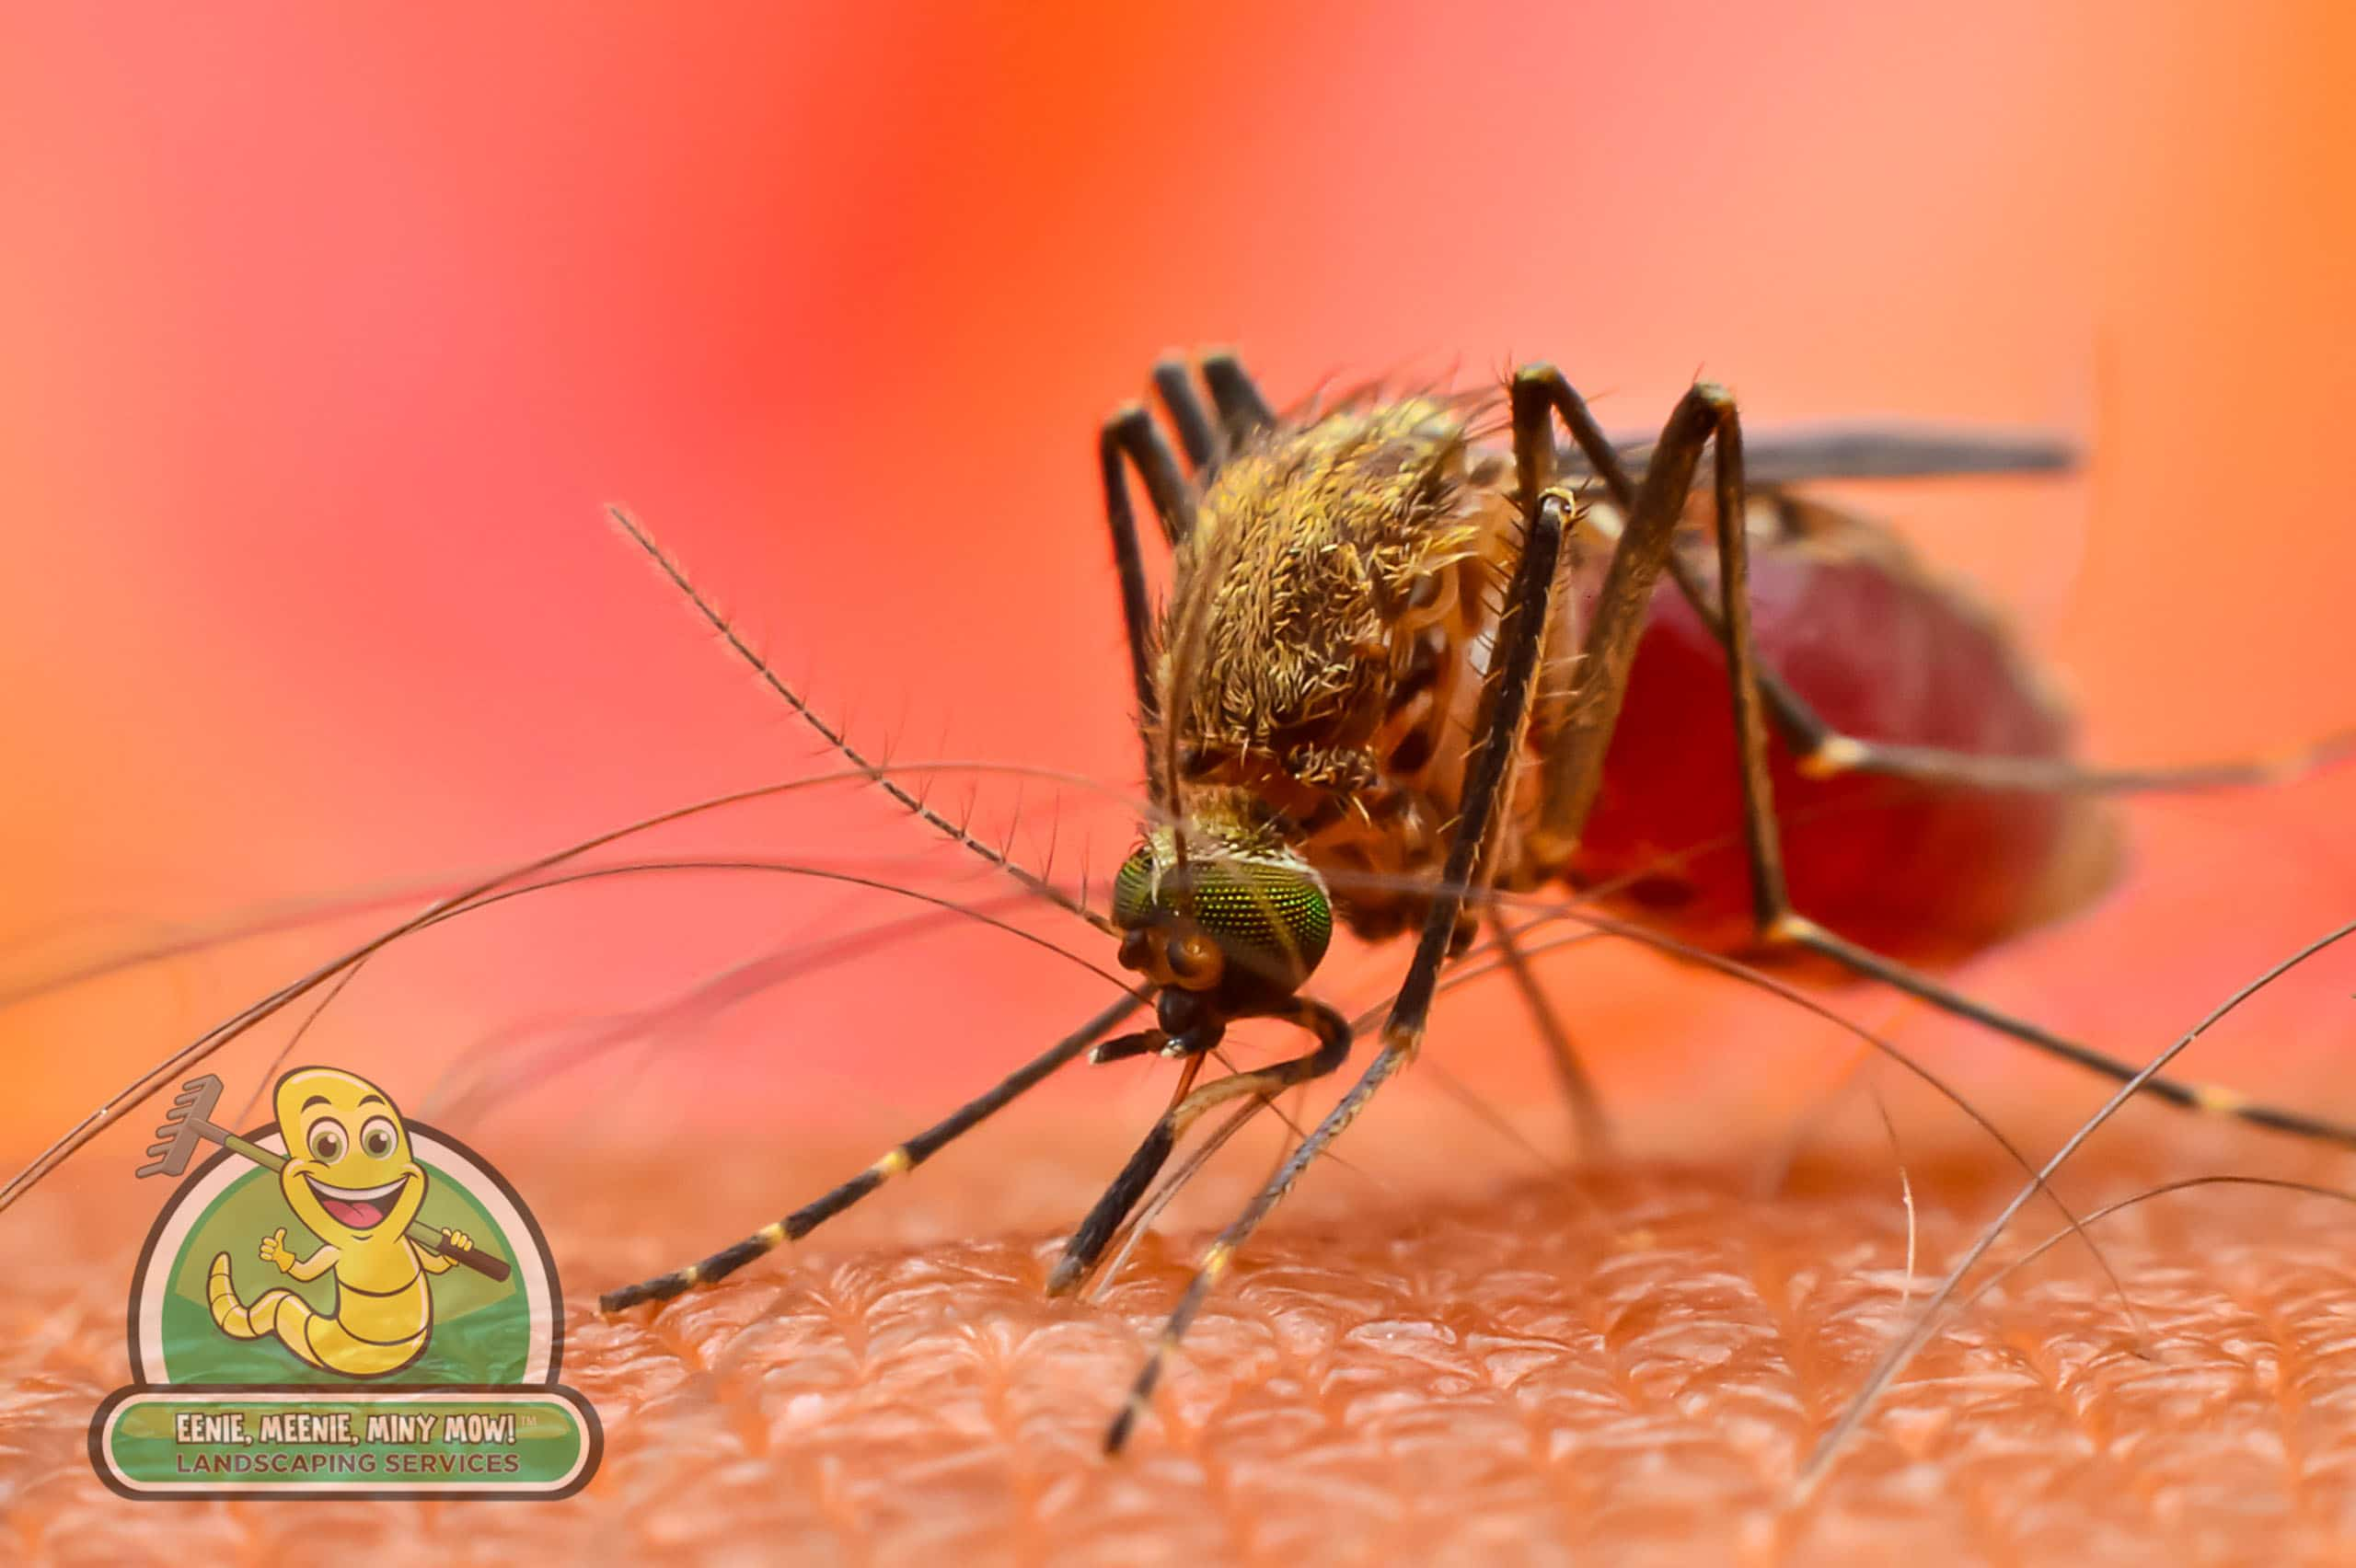 Making a Dent in Mosquito Populations